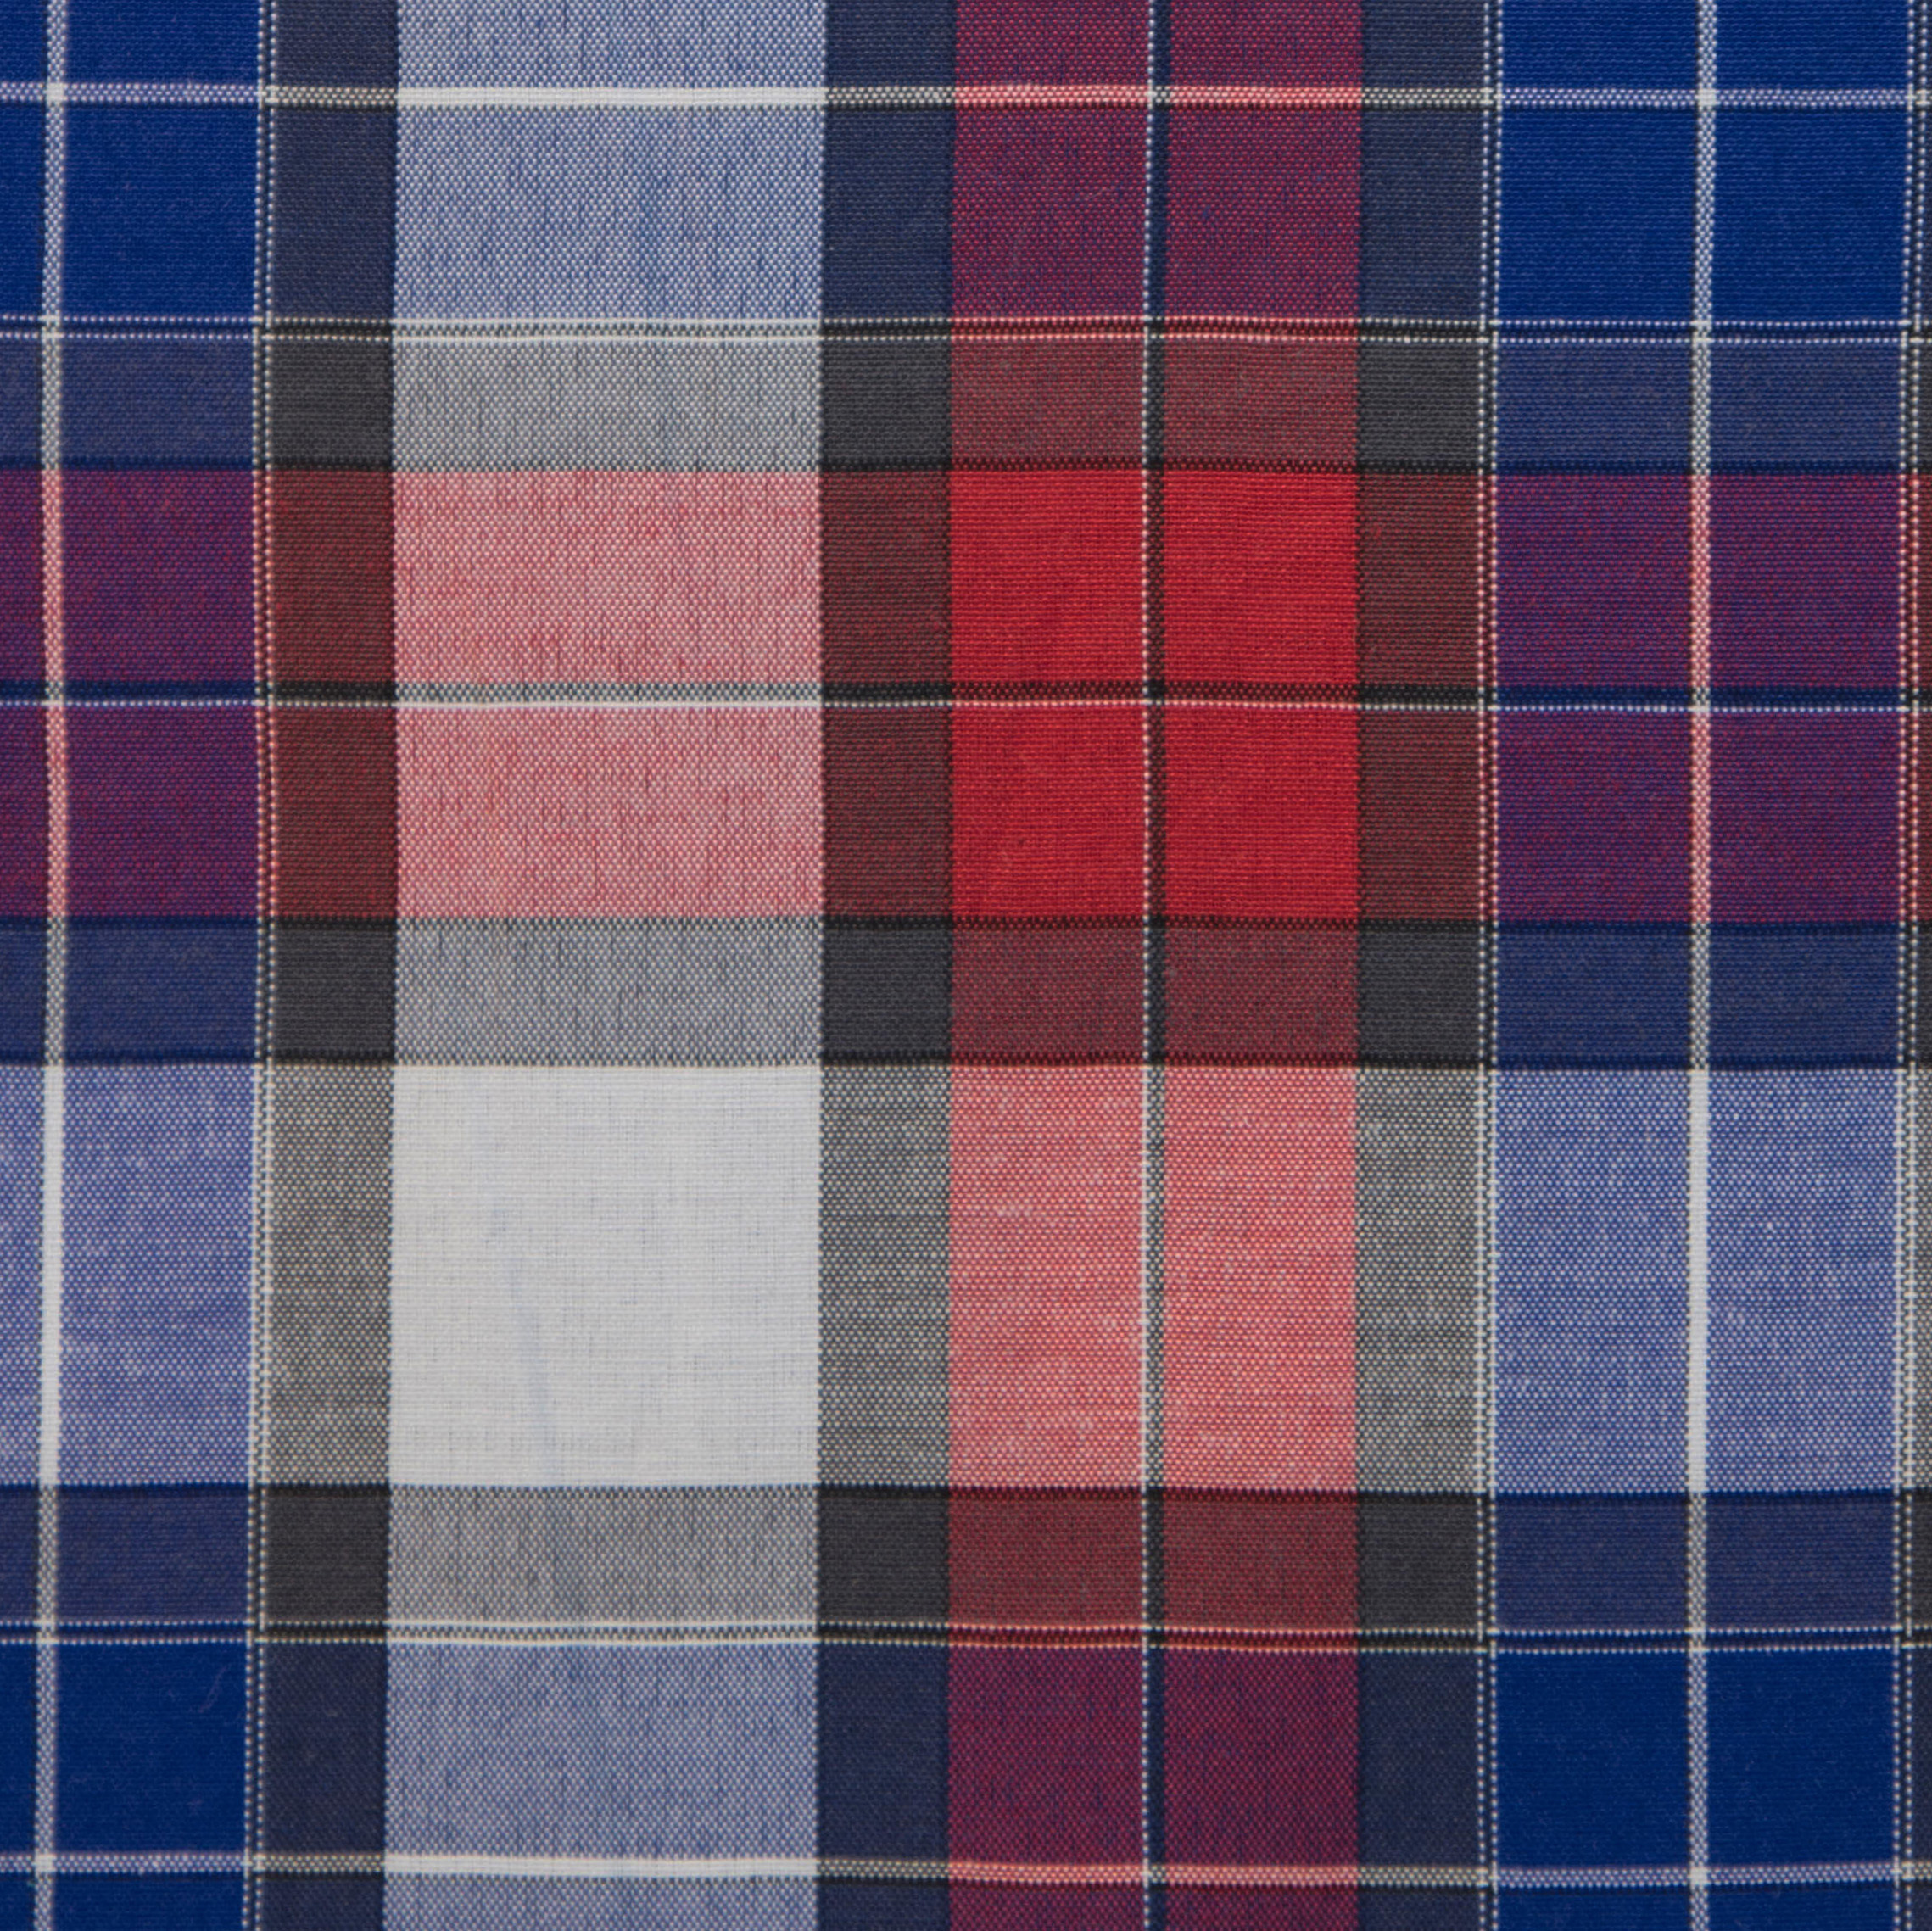 Buy tailor made shirts online - Texas Country Checks (CLEARANCE) - Red, Blue, Black Check